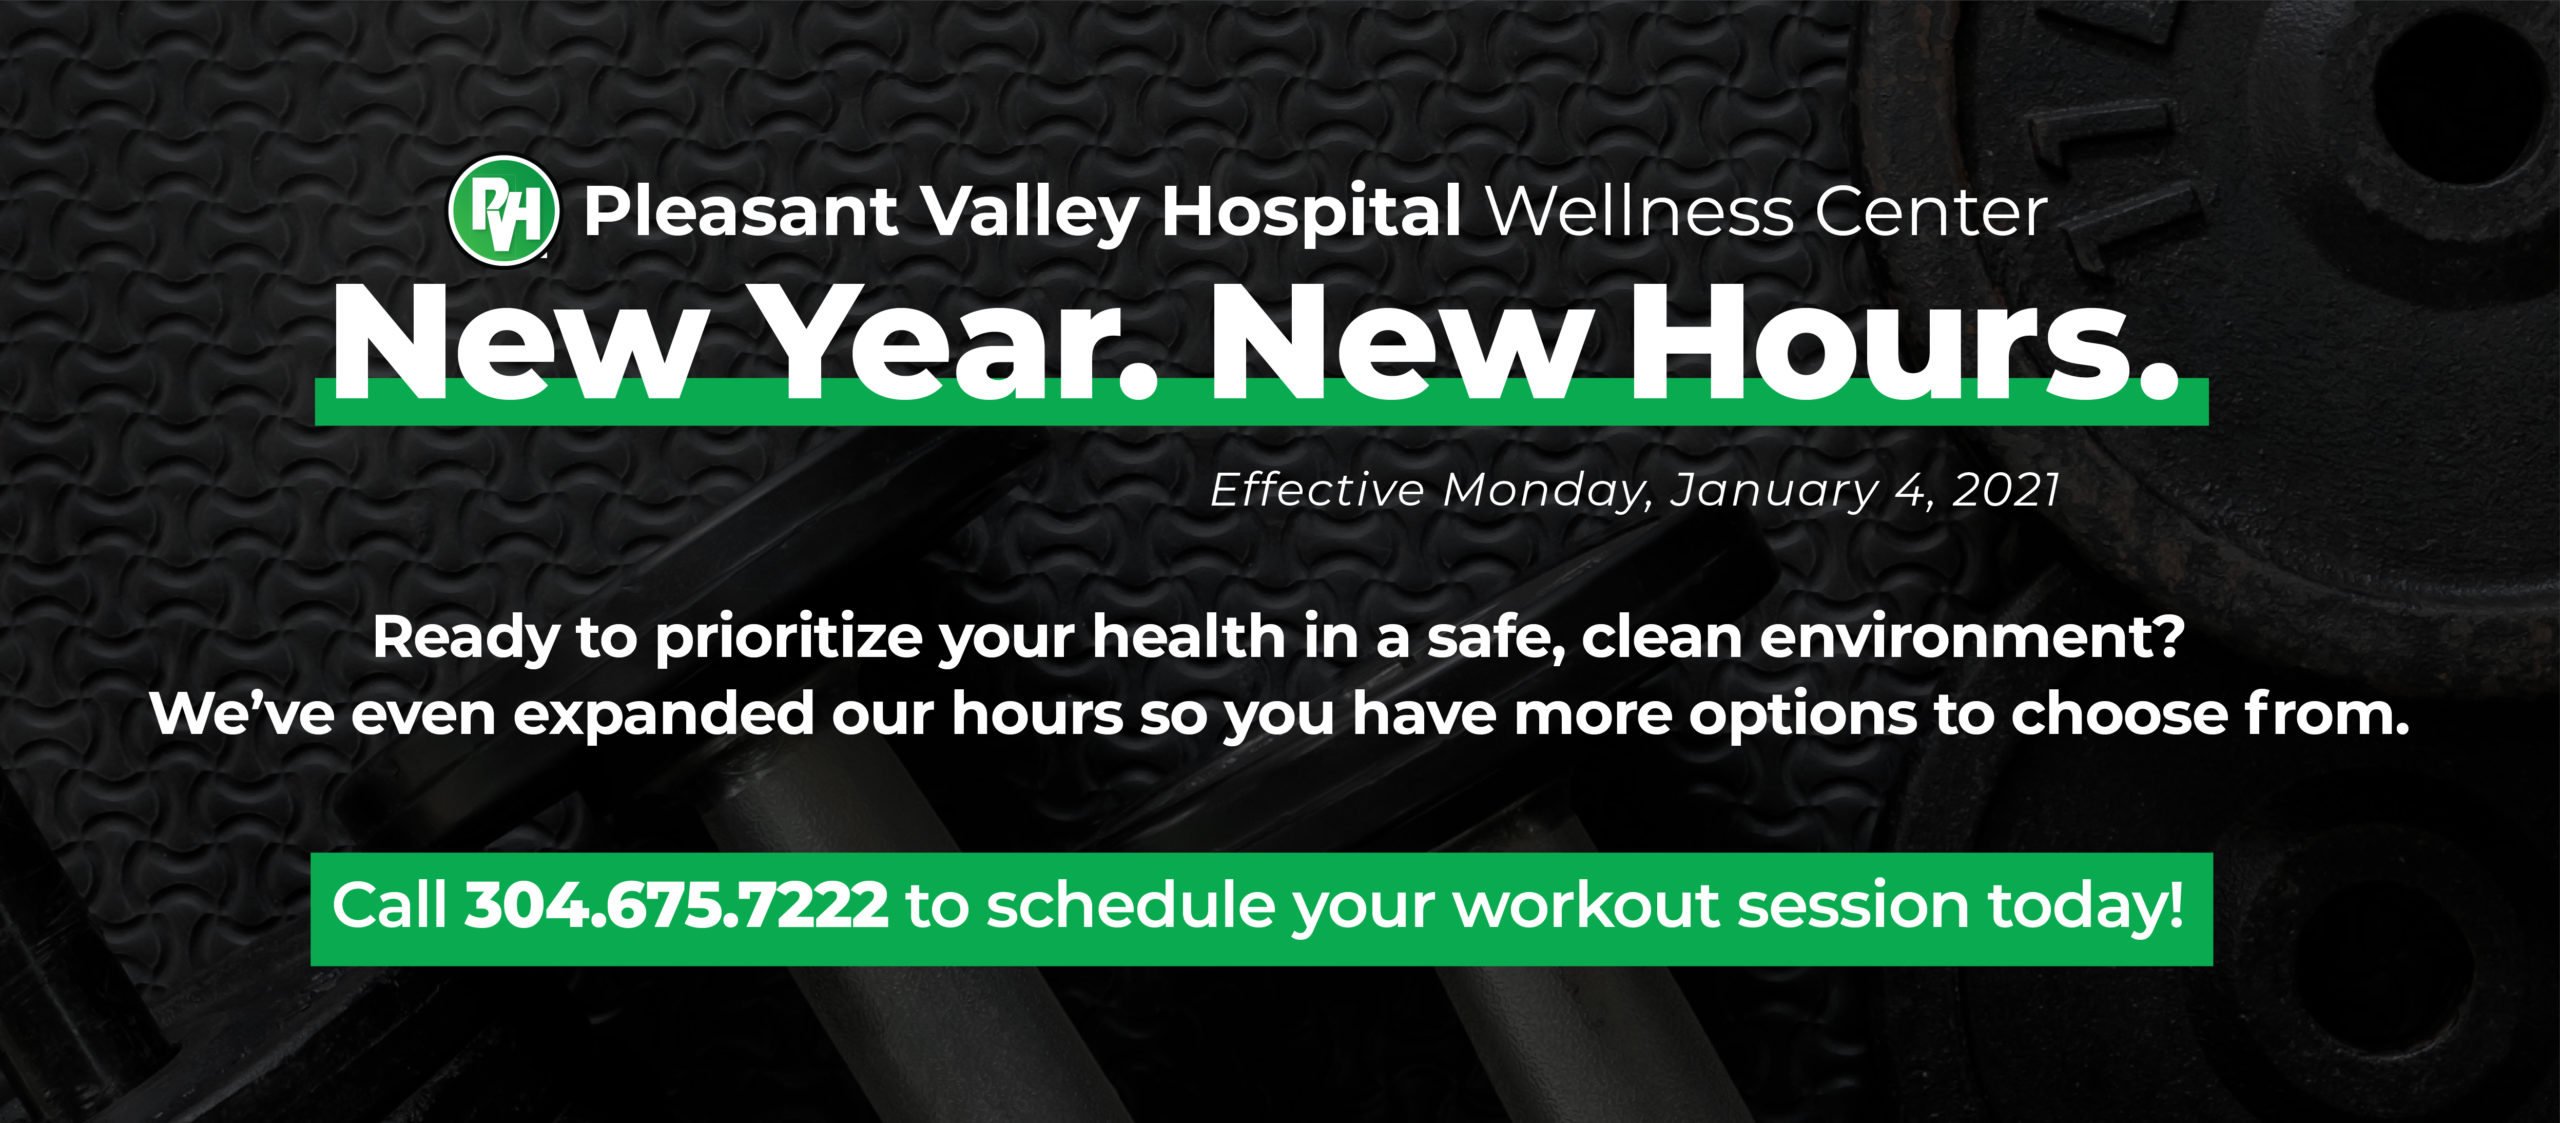 Pleasant Valley Hospital Wellness Center New Year New Hours Effective Monday, January 4, 2021 | Ready to prioritize your health in a safe, clean environment? We've even expanded our hours so you have more options to choose from. Call 304.675.7222 to schedule your workout session today!